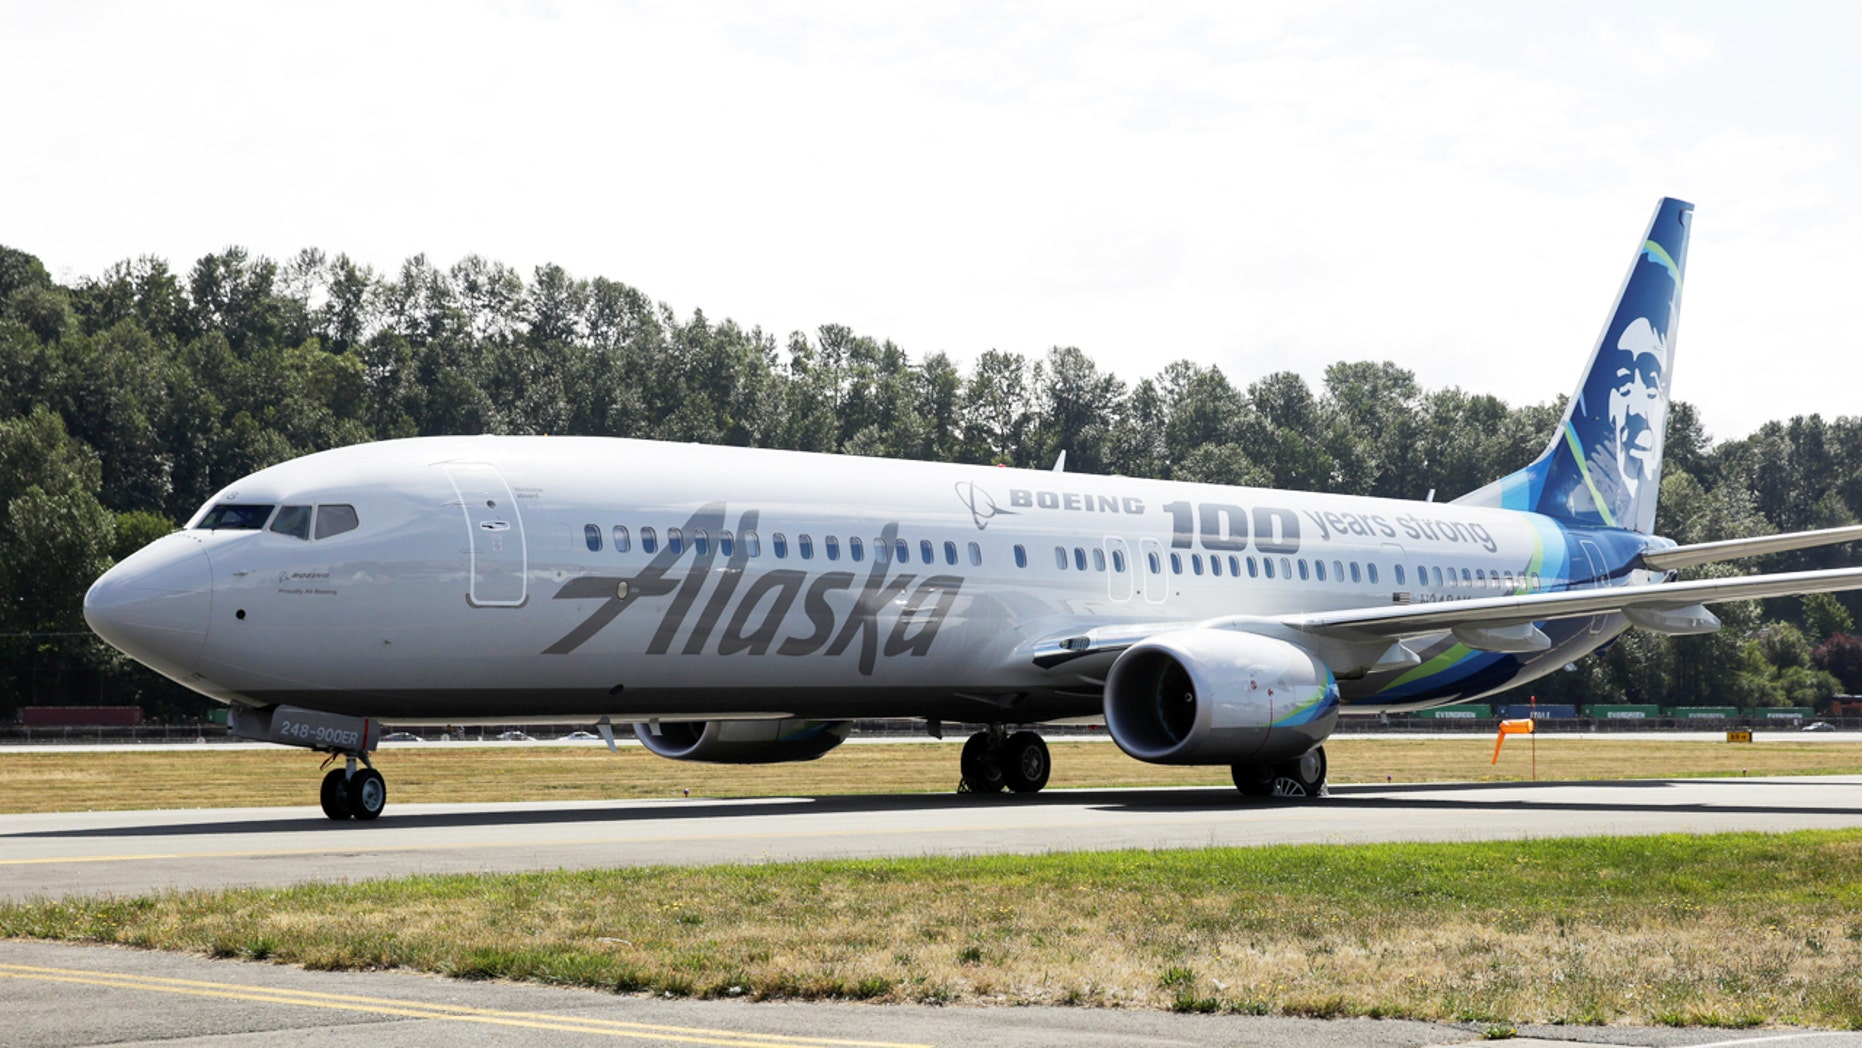 An Alaska Airlines plane is pictured with a paint job to mark the centennial of The Boeing Company in Seattle, Washington July 15, 2016.  REUTERS/Jason Redmond - RTSI89G